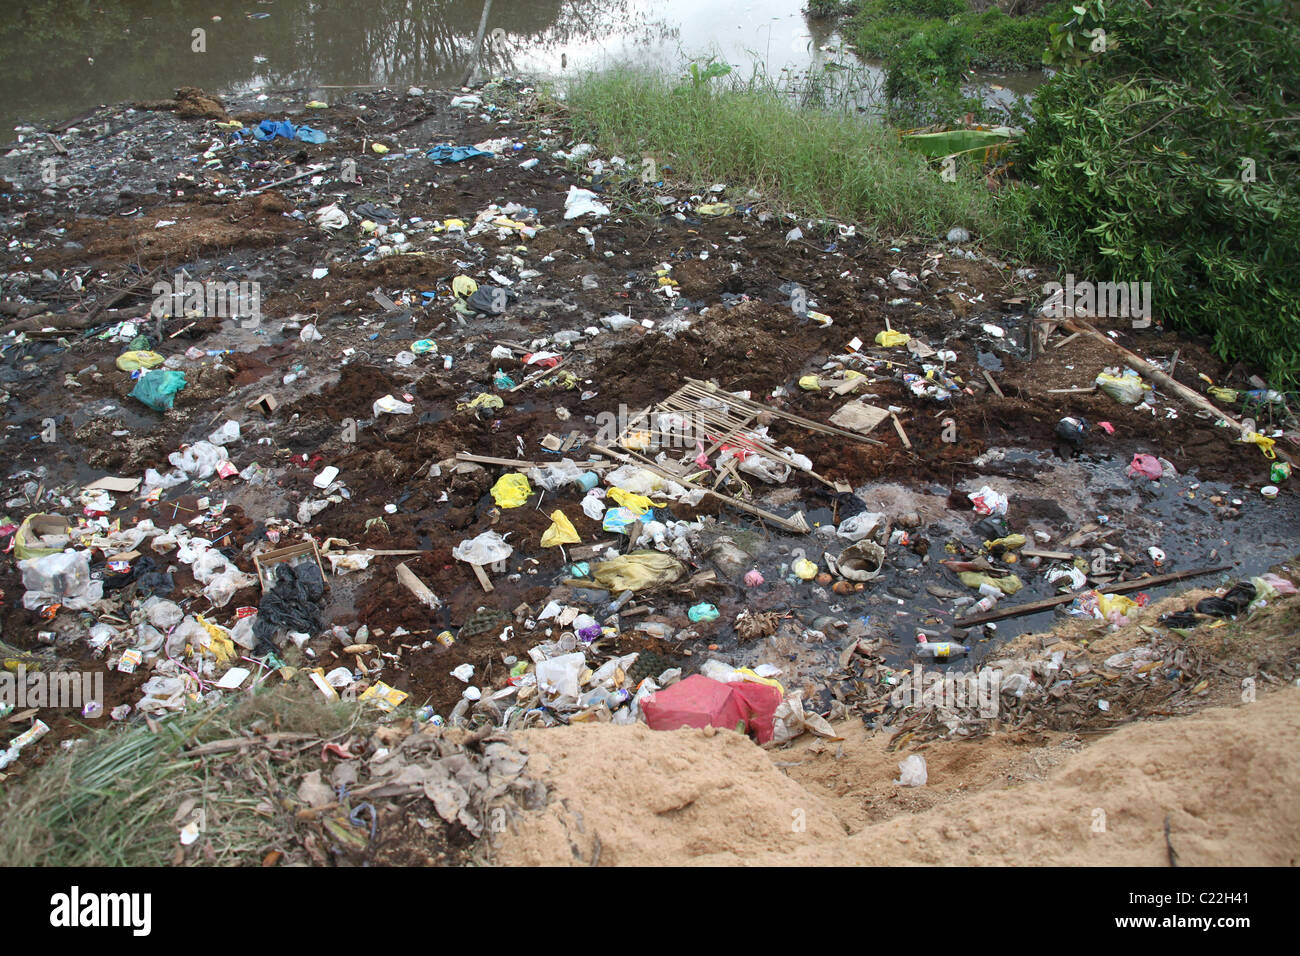 Garbage in the river - Stock Image